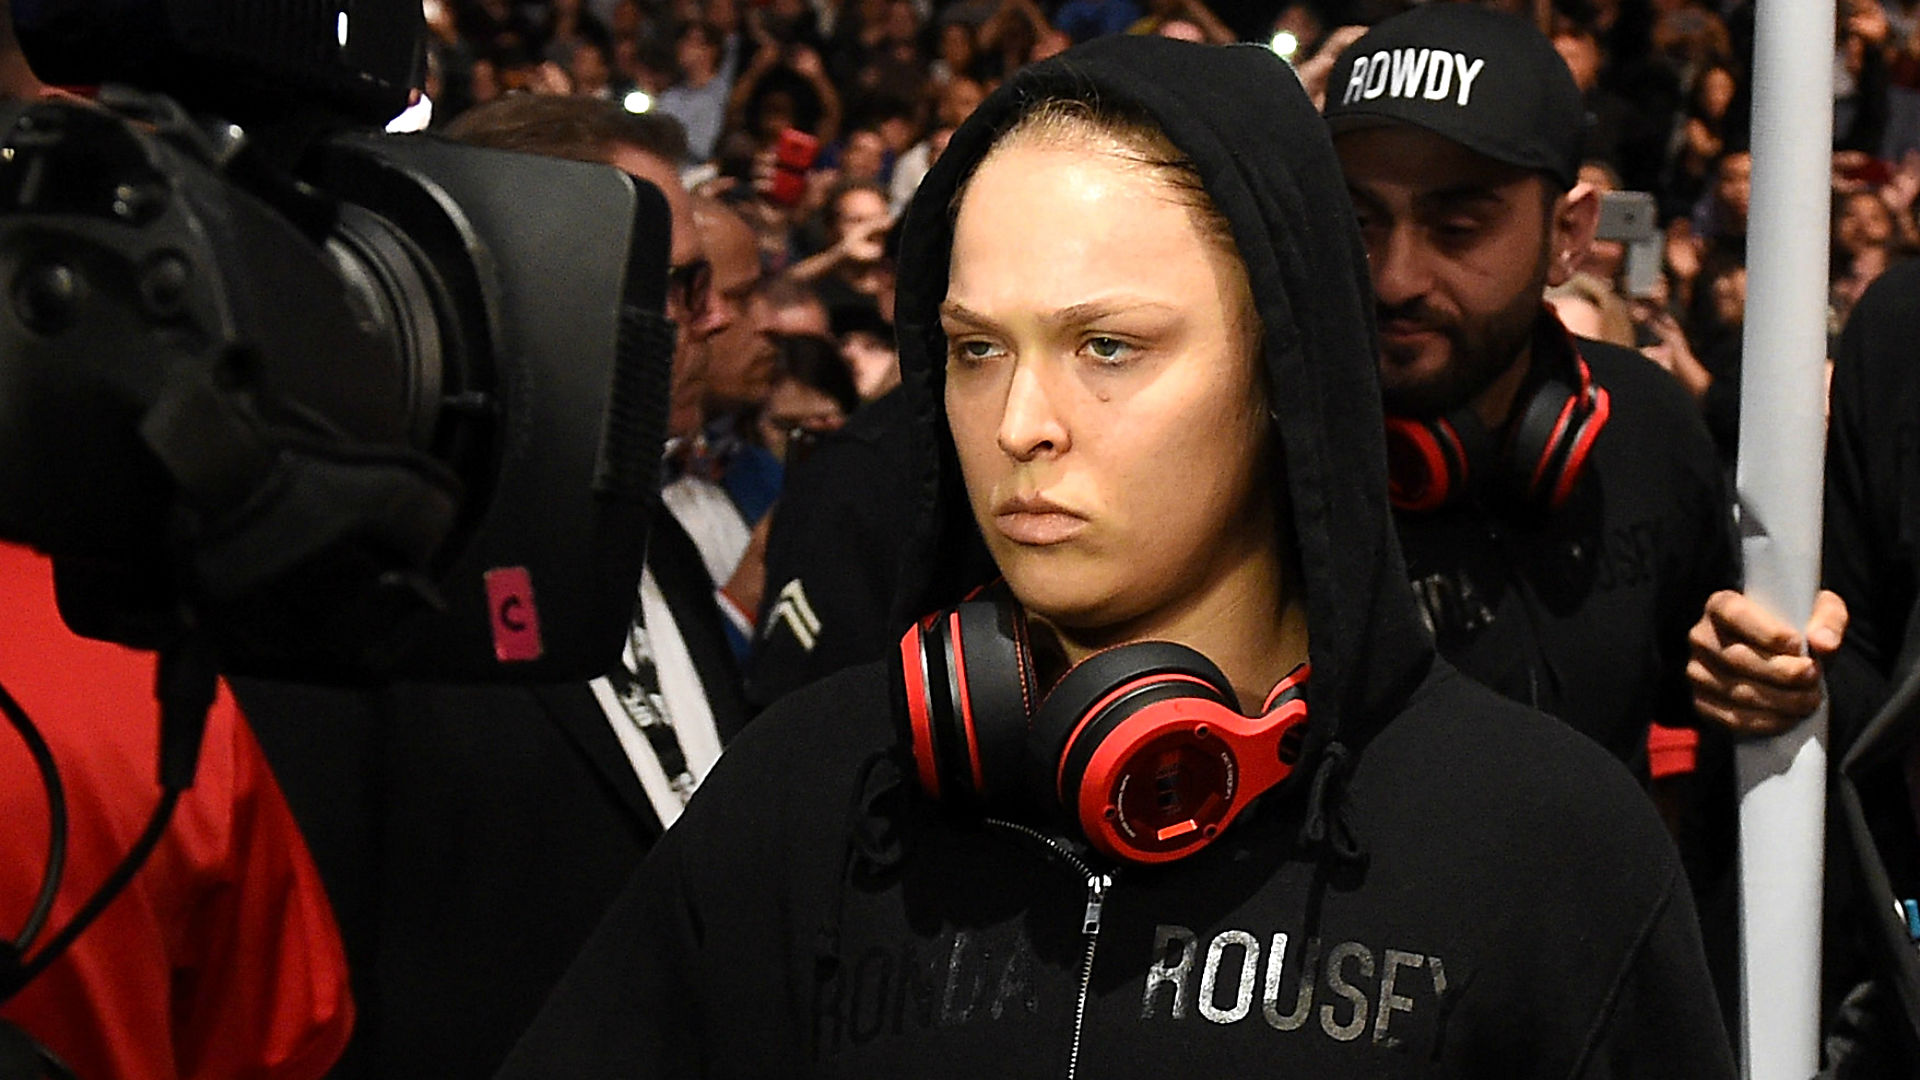 ronda-rousey-GettyImages_464824078-FTR.jpg